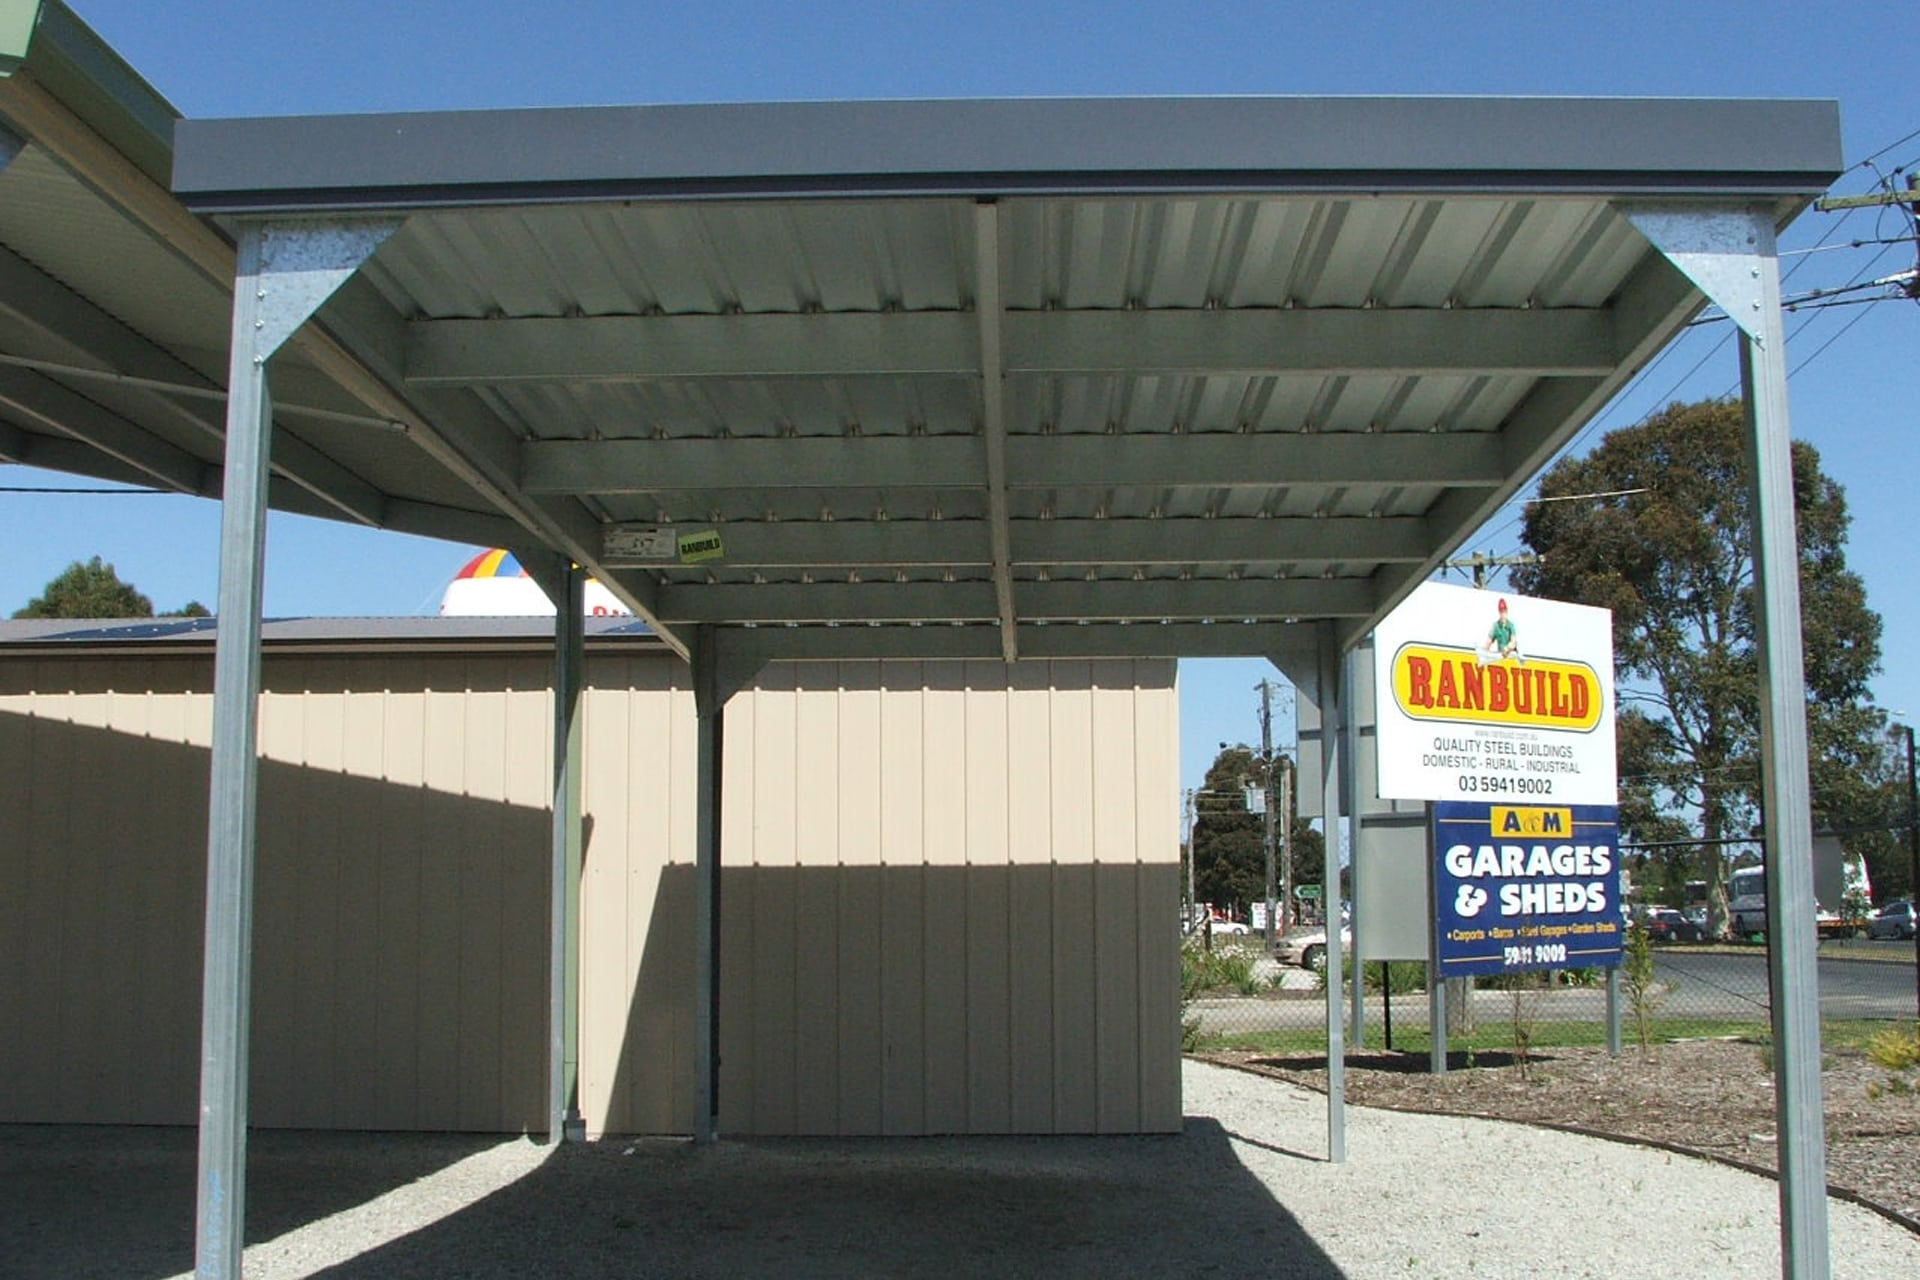 Carports sheds and garages for sale - Ranbuild